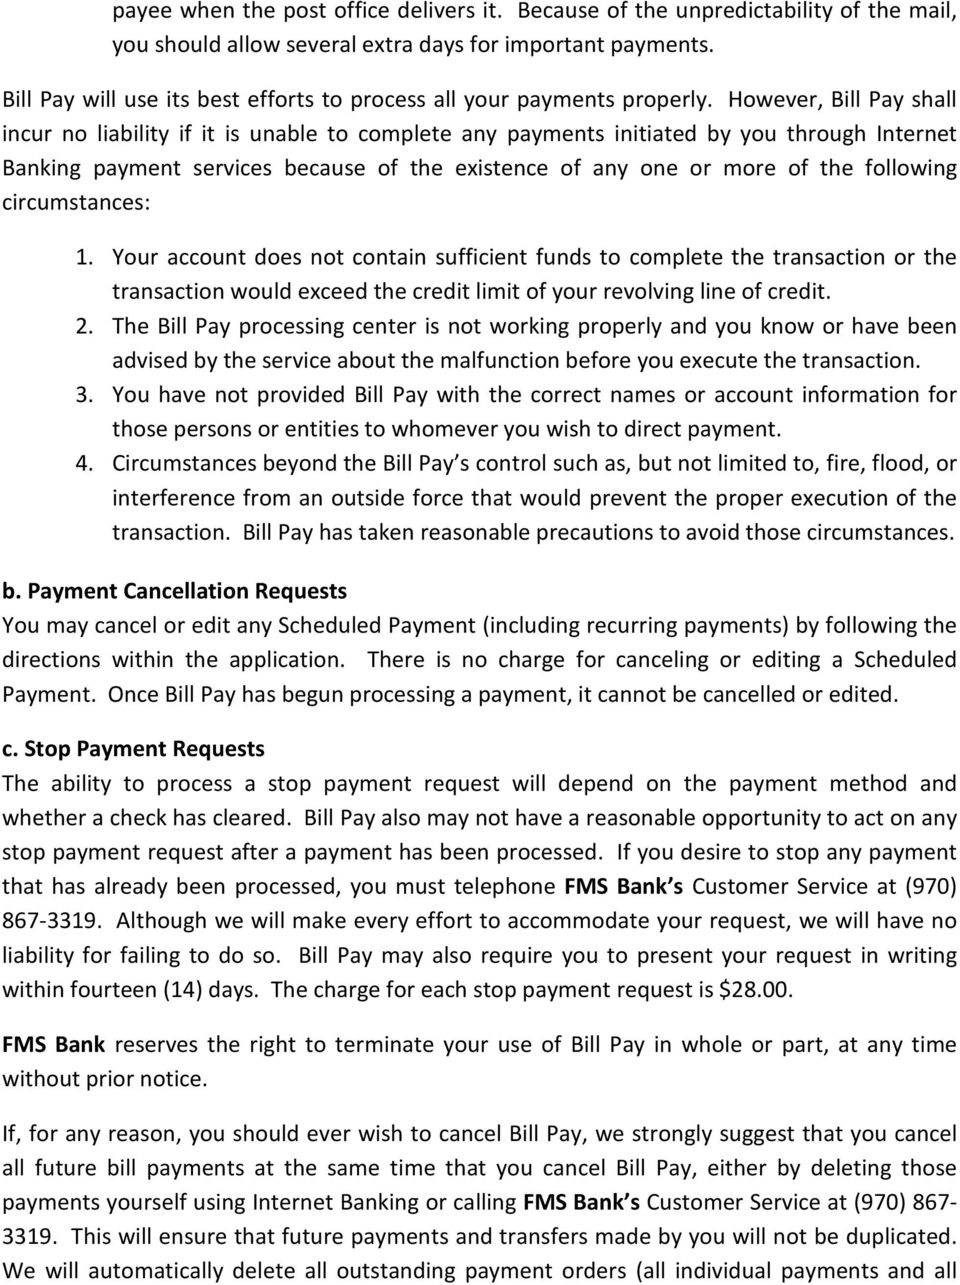 However, Bill Pay shall incur no liability if it is unable to complete any payments initiated by you through Internet Banking payment services because of the existence of any one or more of the